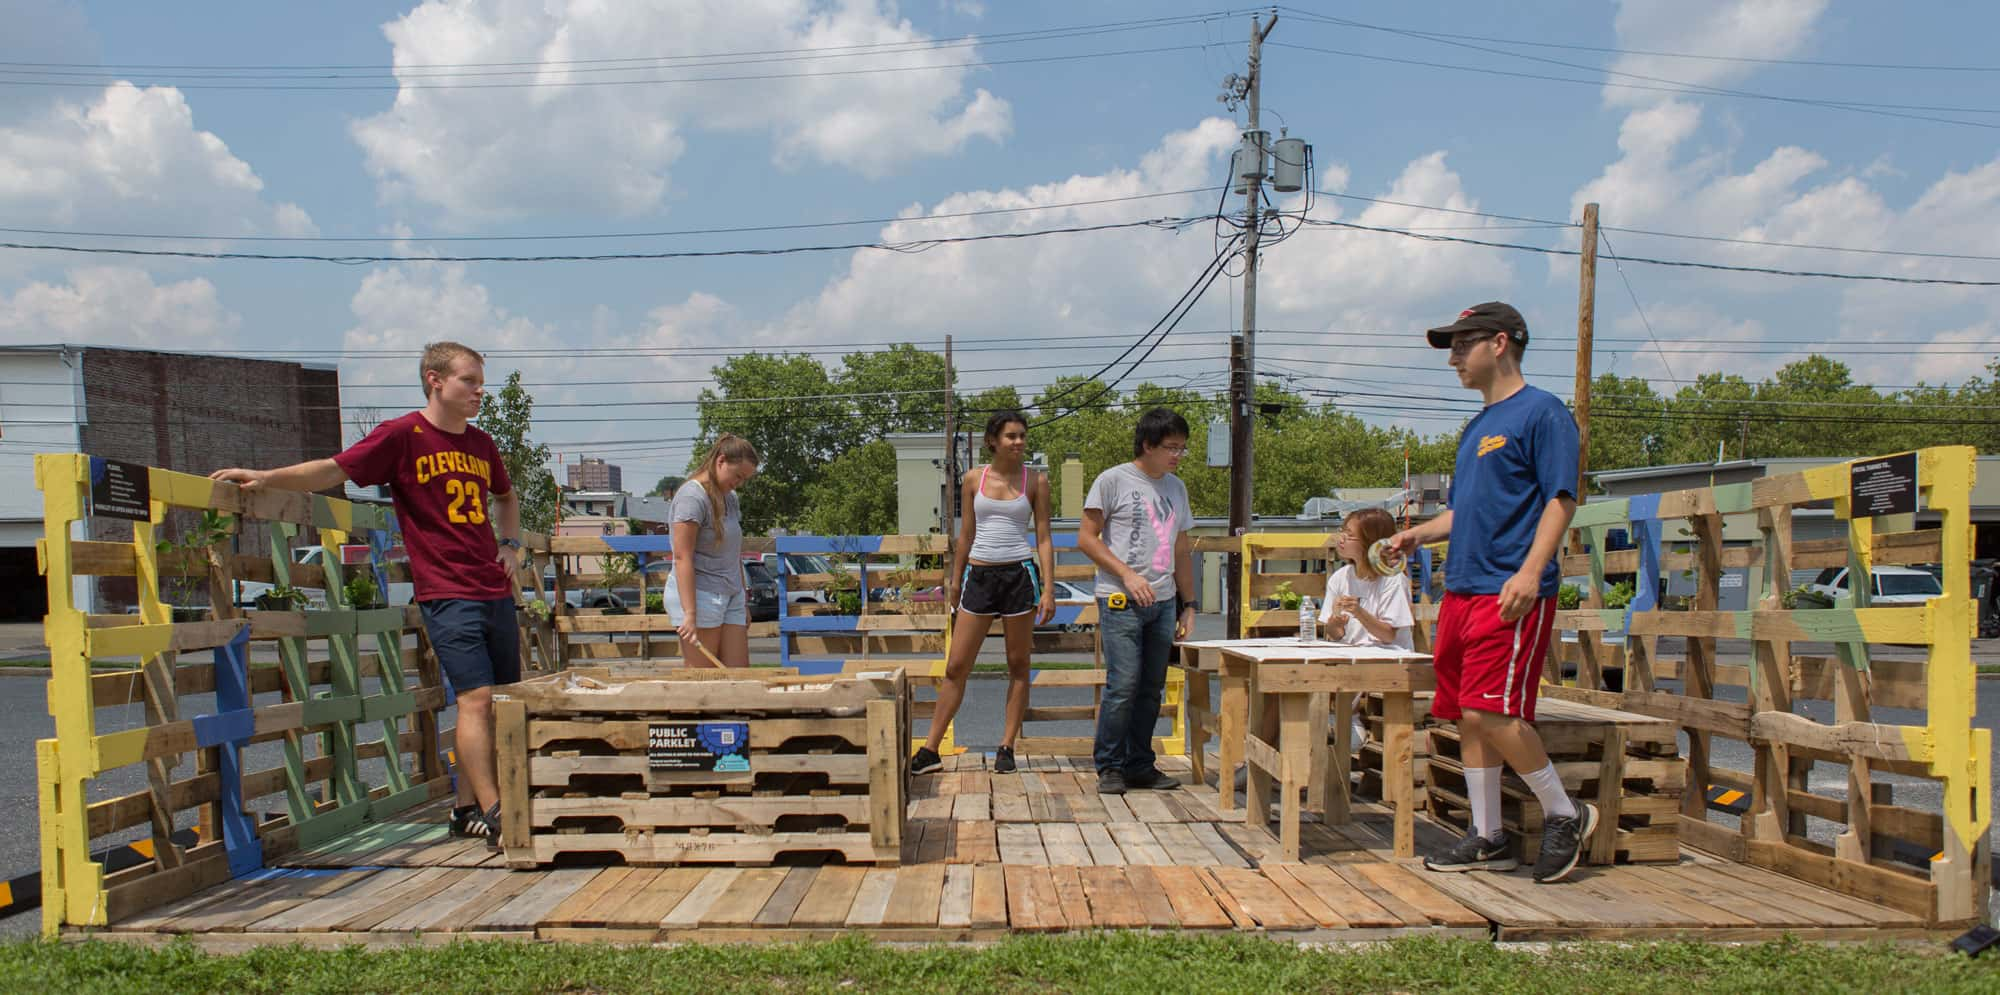 Students working on a parklet made of wood pallets